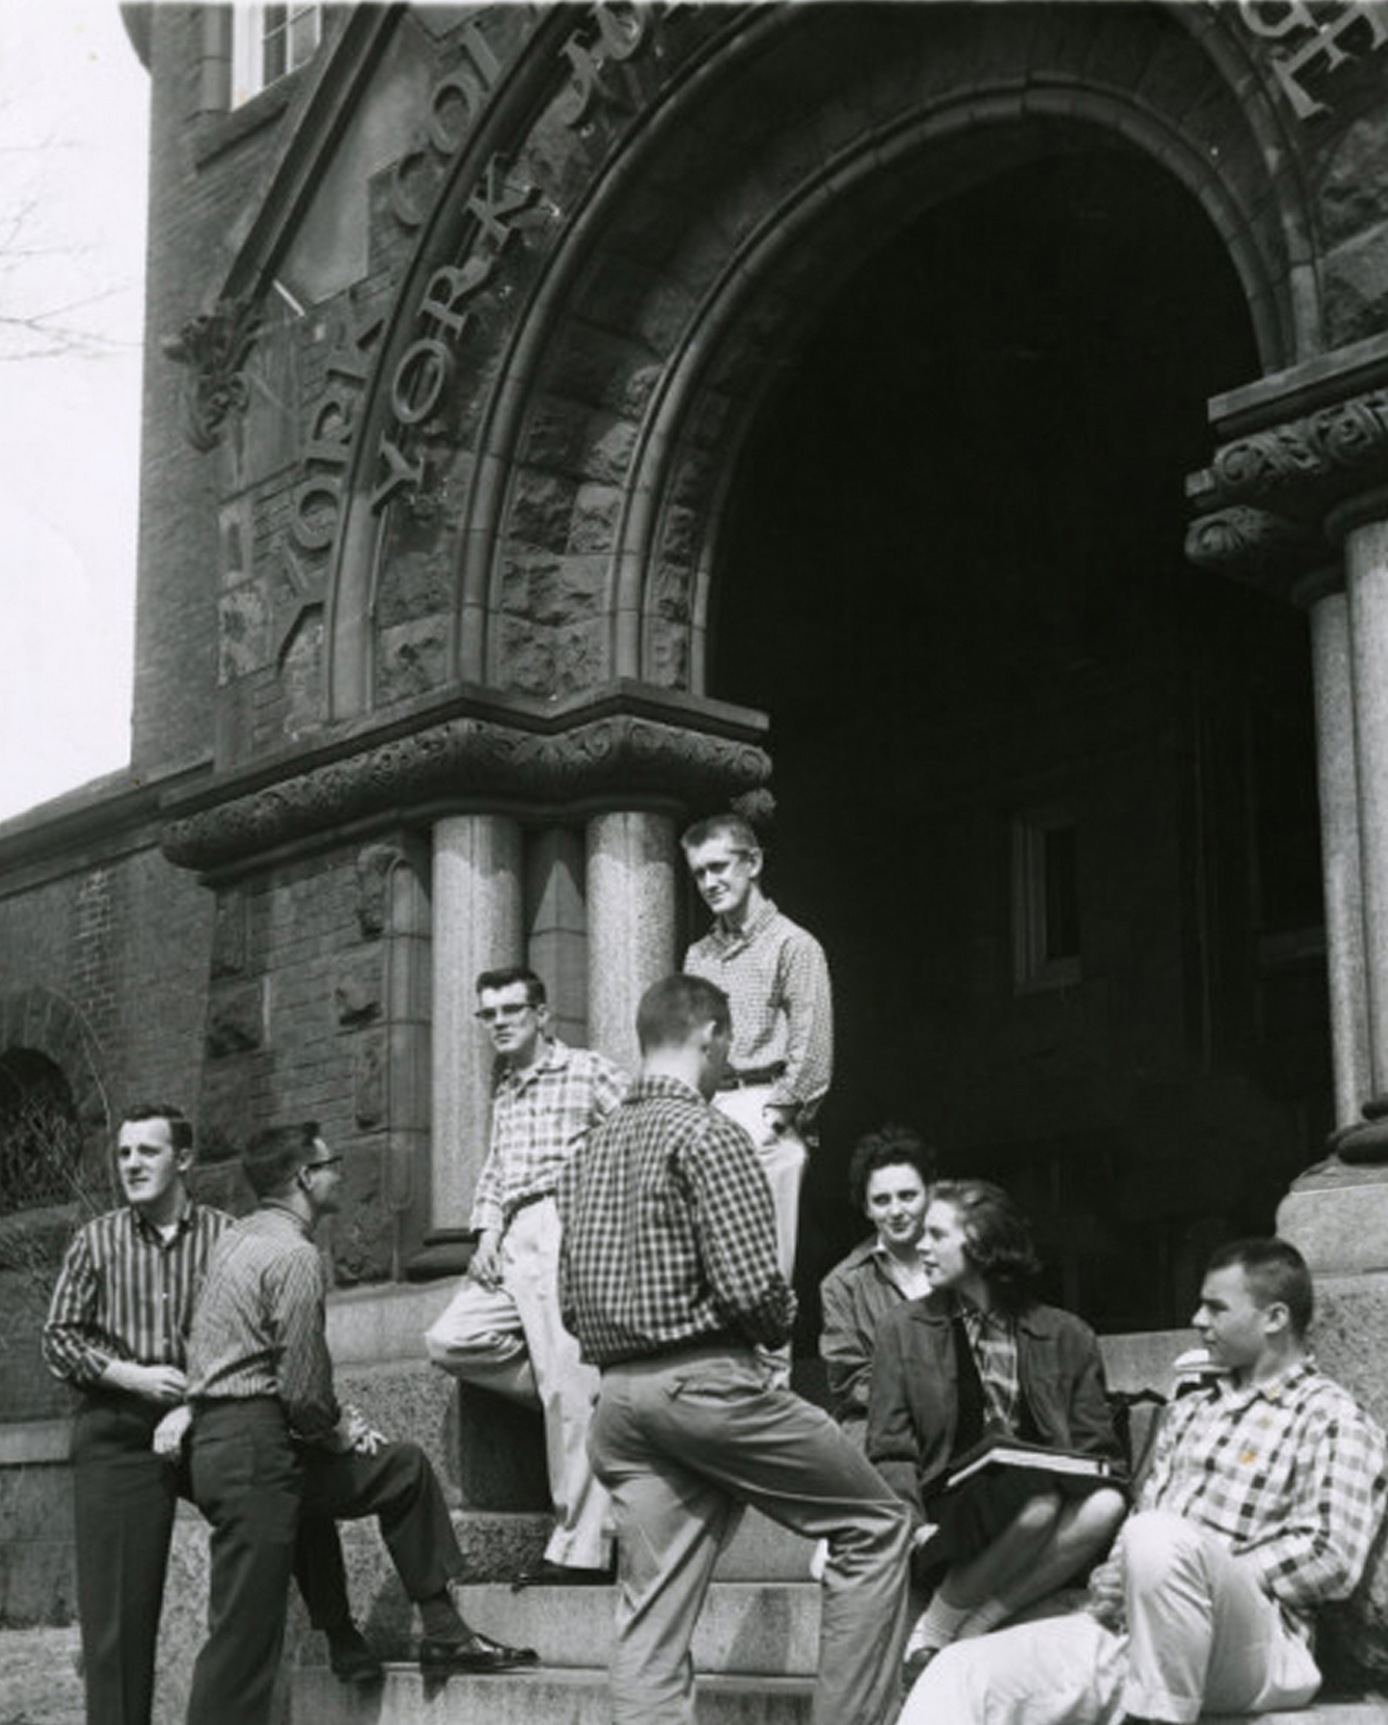 Students on steps